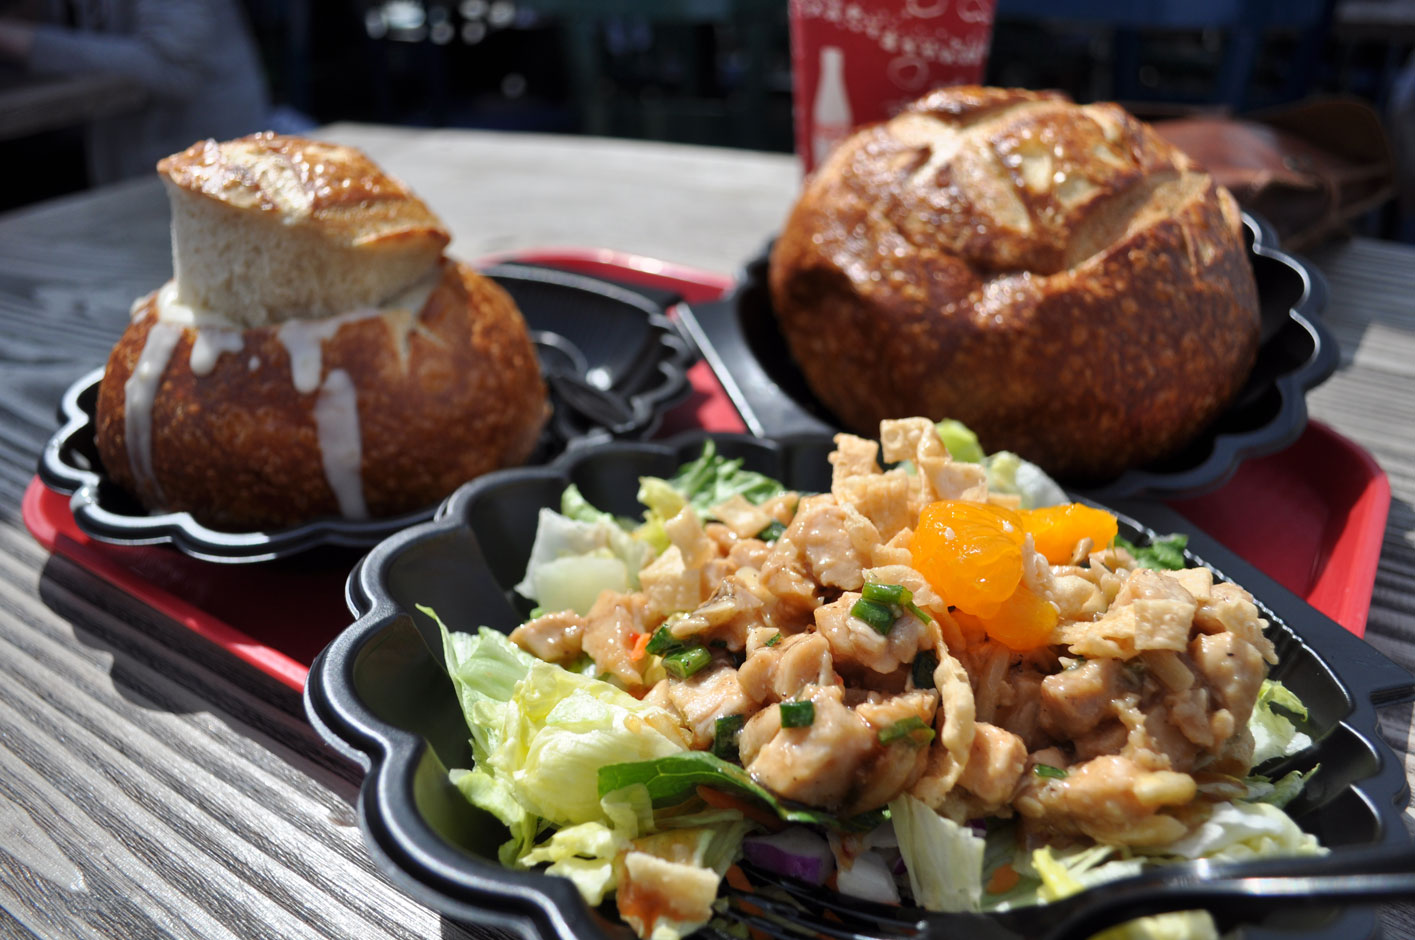 """I recently went on a very strict diet and Disneyland was the one place I allowed myself to """"cheat."""" One of my favorite things to get at the DLR is […]"""